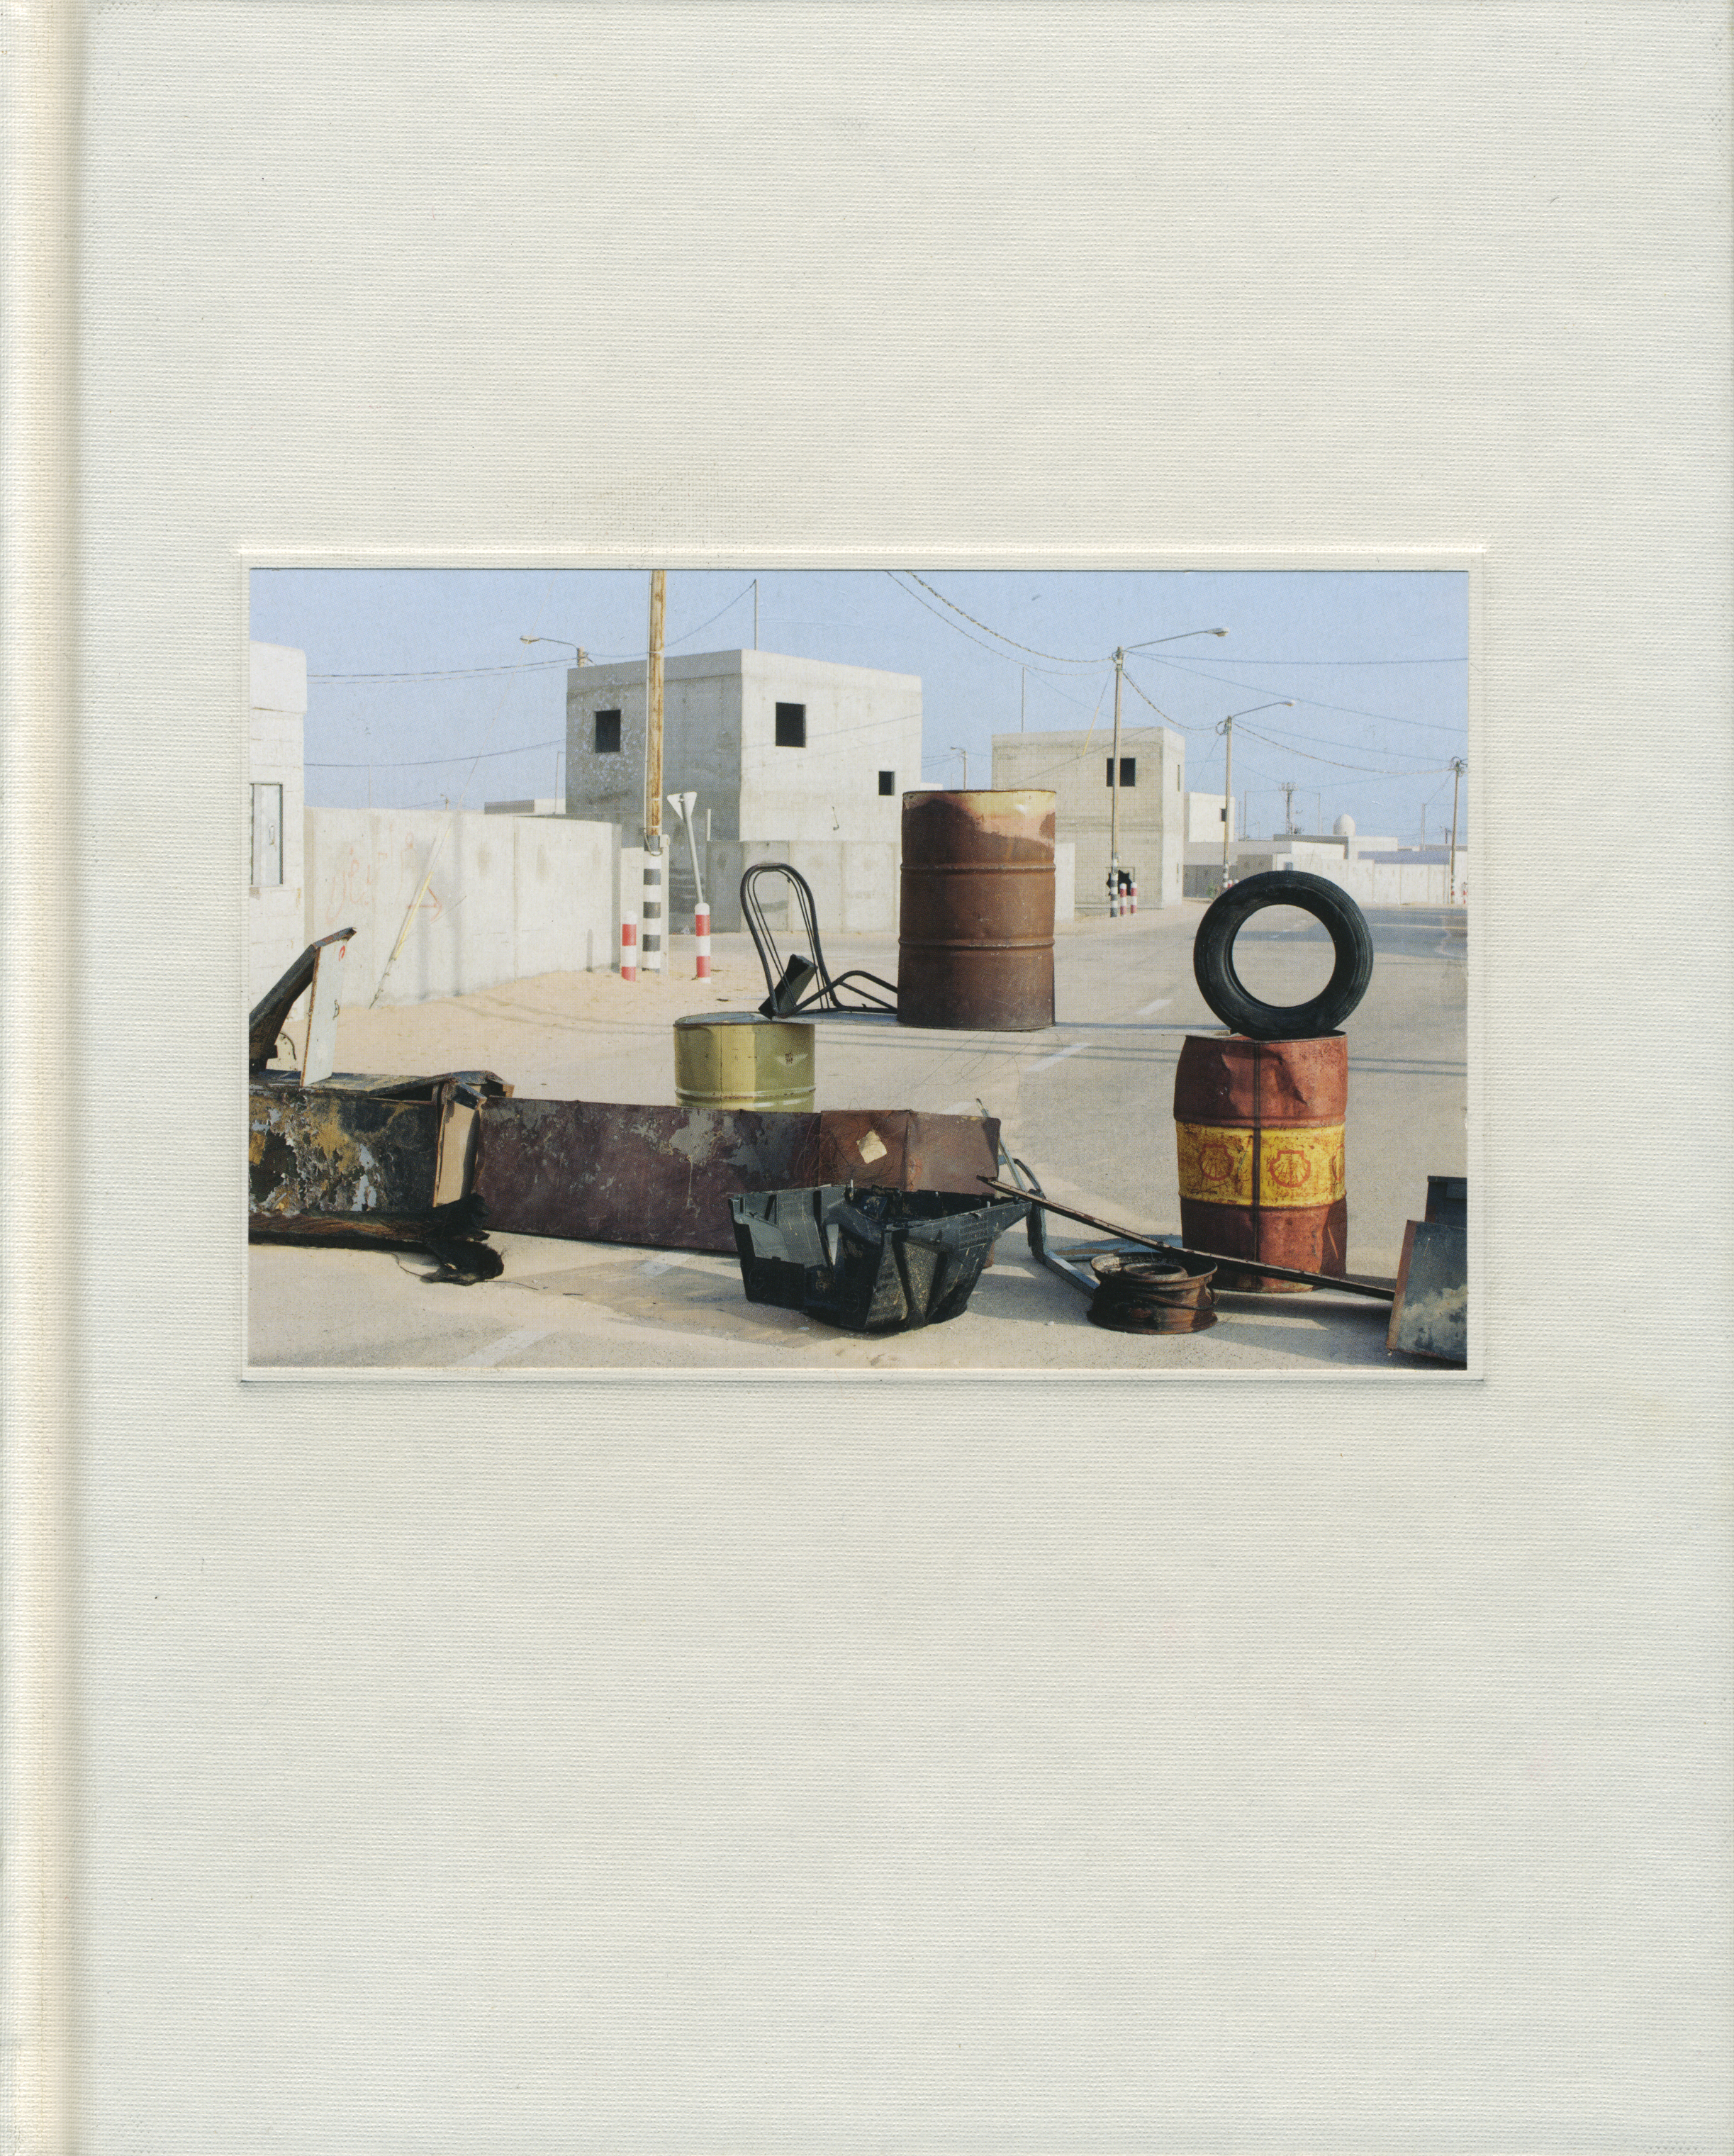 Martin Kollar  Field Trip  mack books  76 Pages, 20 cm x 25 cm Hardcover / English Release date: October 2013 40,00 €